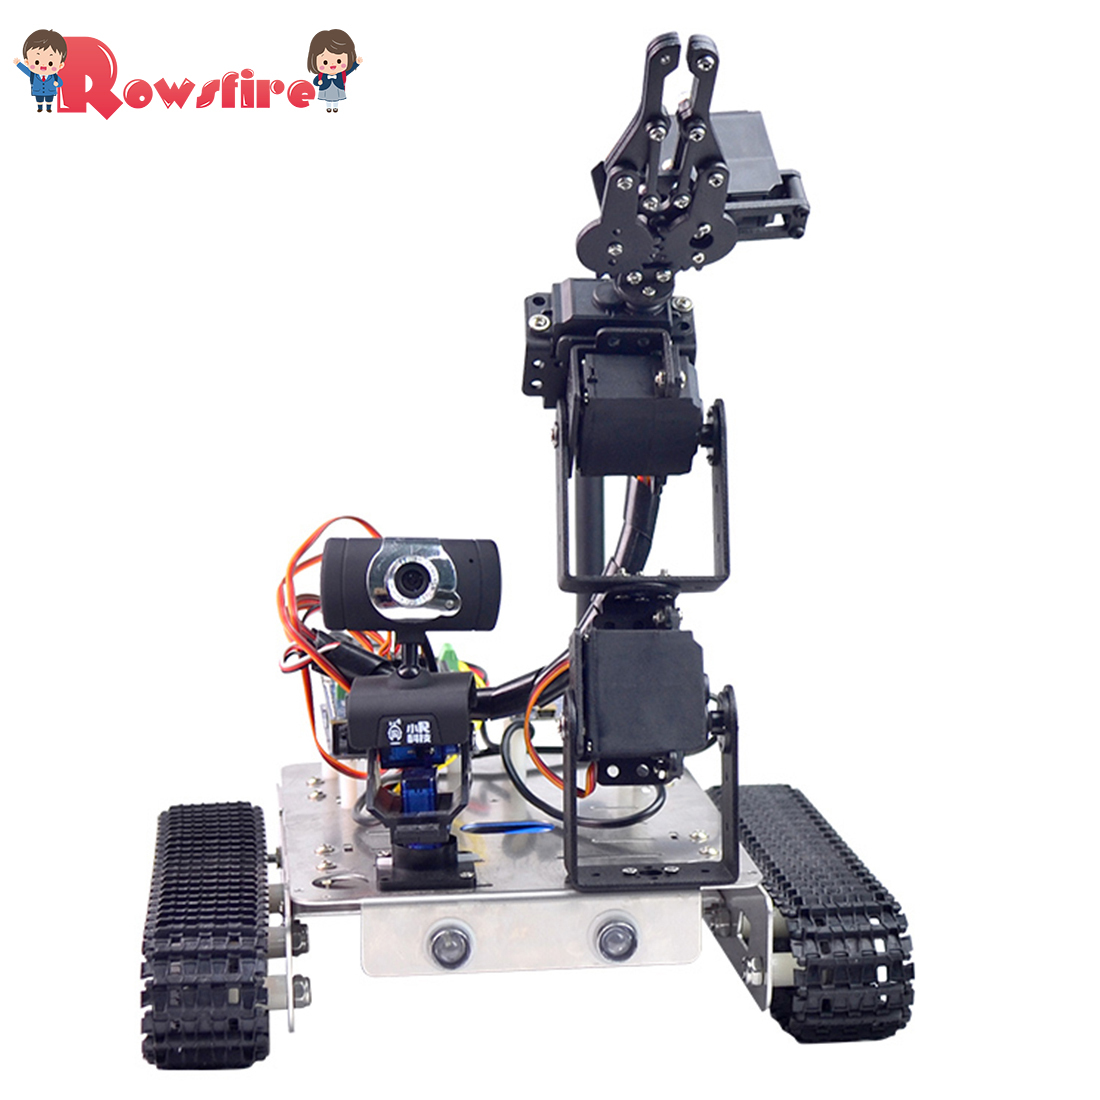 Programmable Robot DIY Wifi+Bluetooth Stainless Steel Chassis Track Tank Steam Educational Car With Arm For Raspberry Pi 4